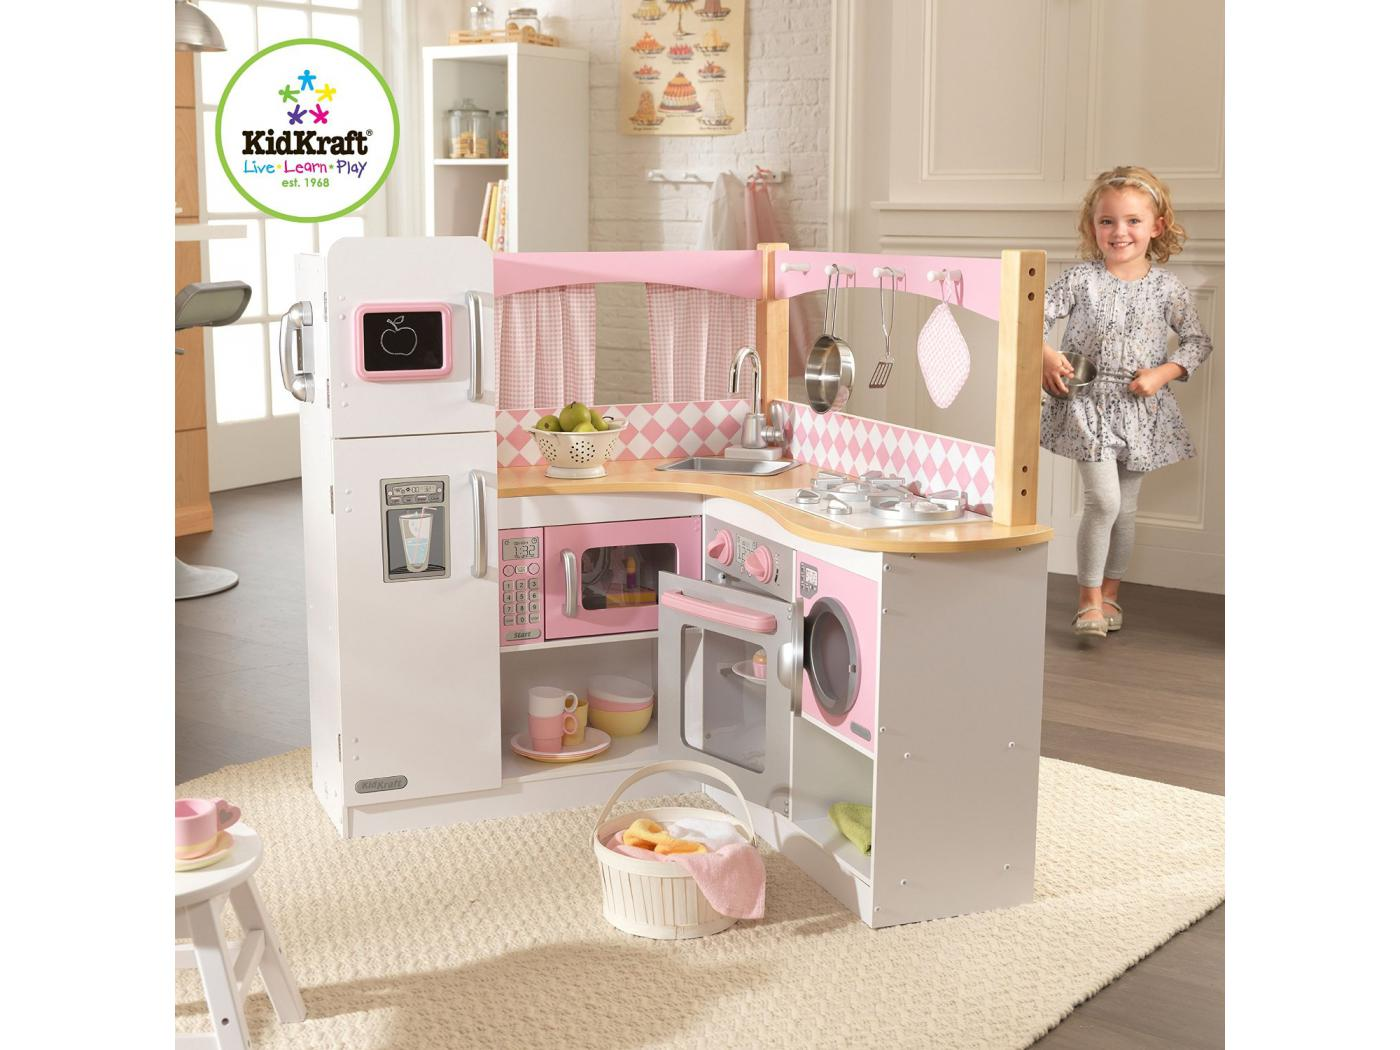 kidkraft batterie de cuisine pastel de 27 pi ces. Black Bedroom Furniture Sets. Home Design Ideas